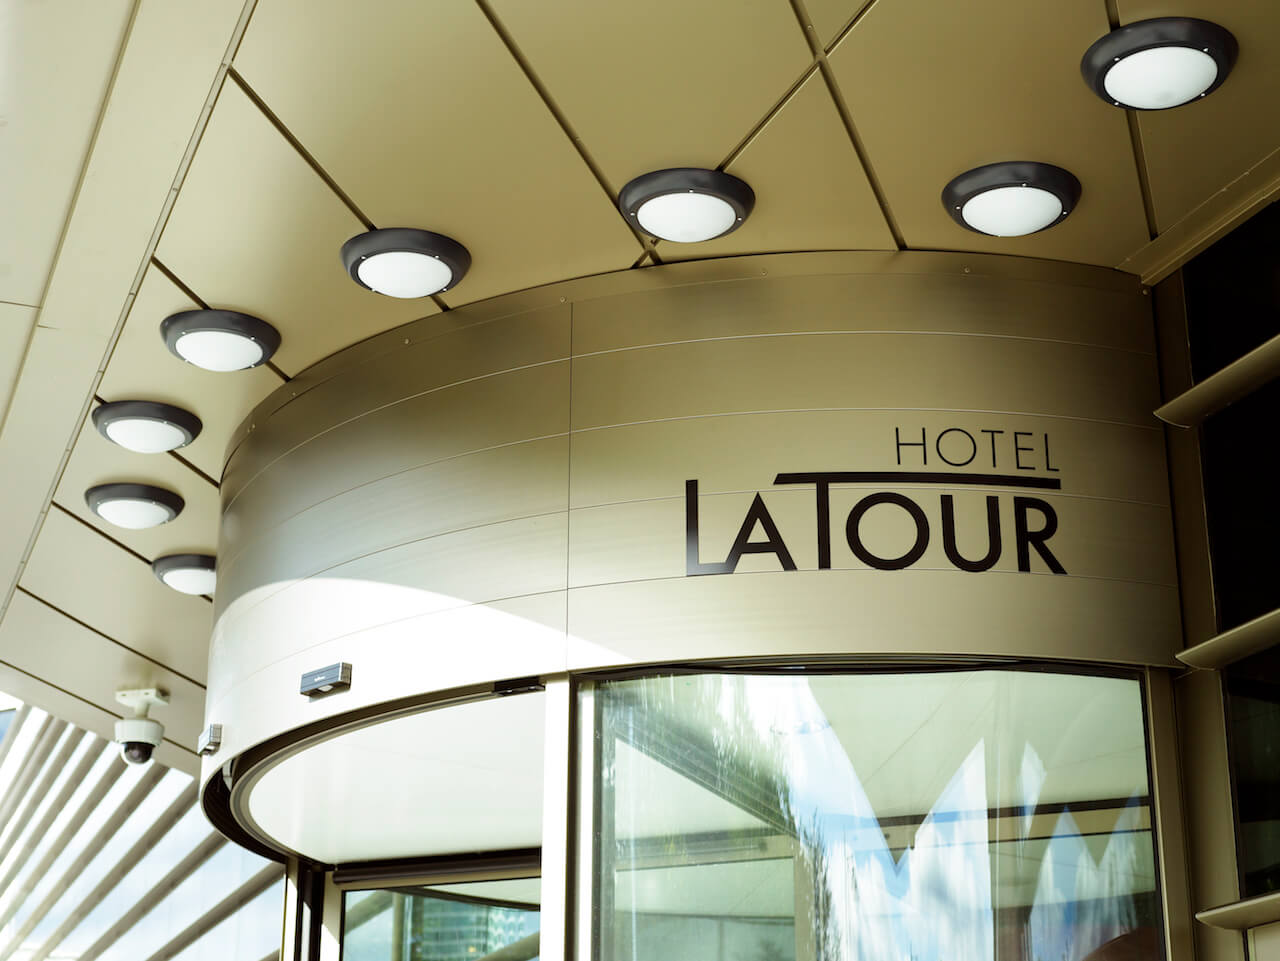 External graphics at Hotel La Tour to mark the main entrance